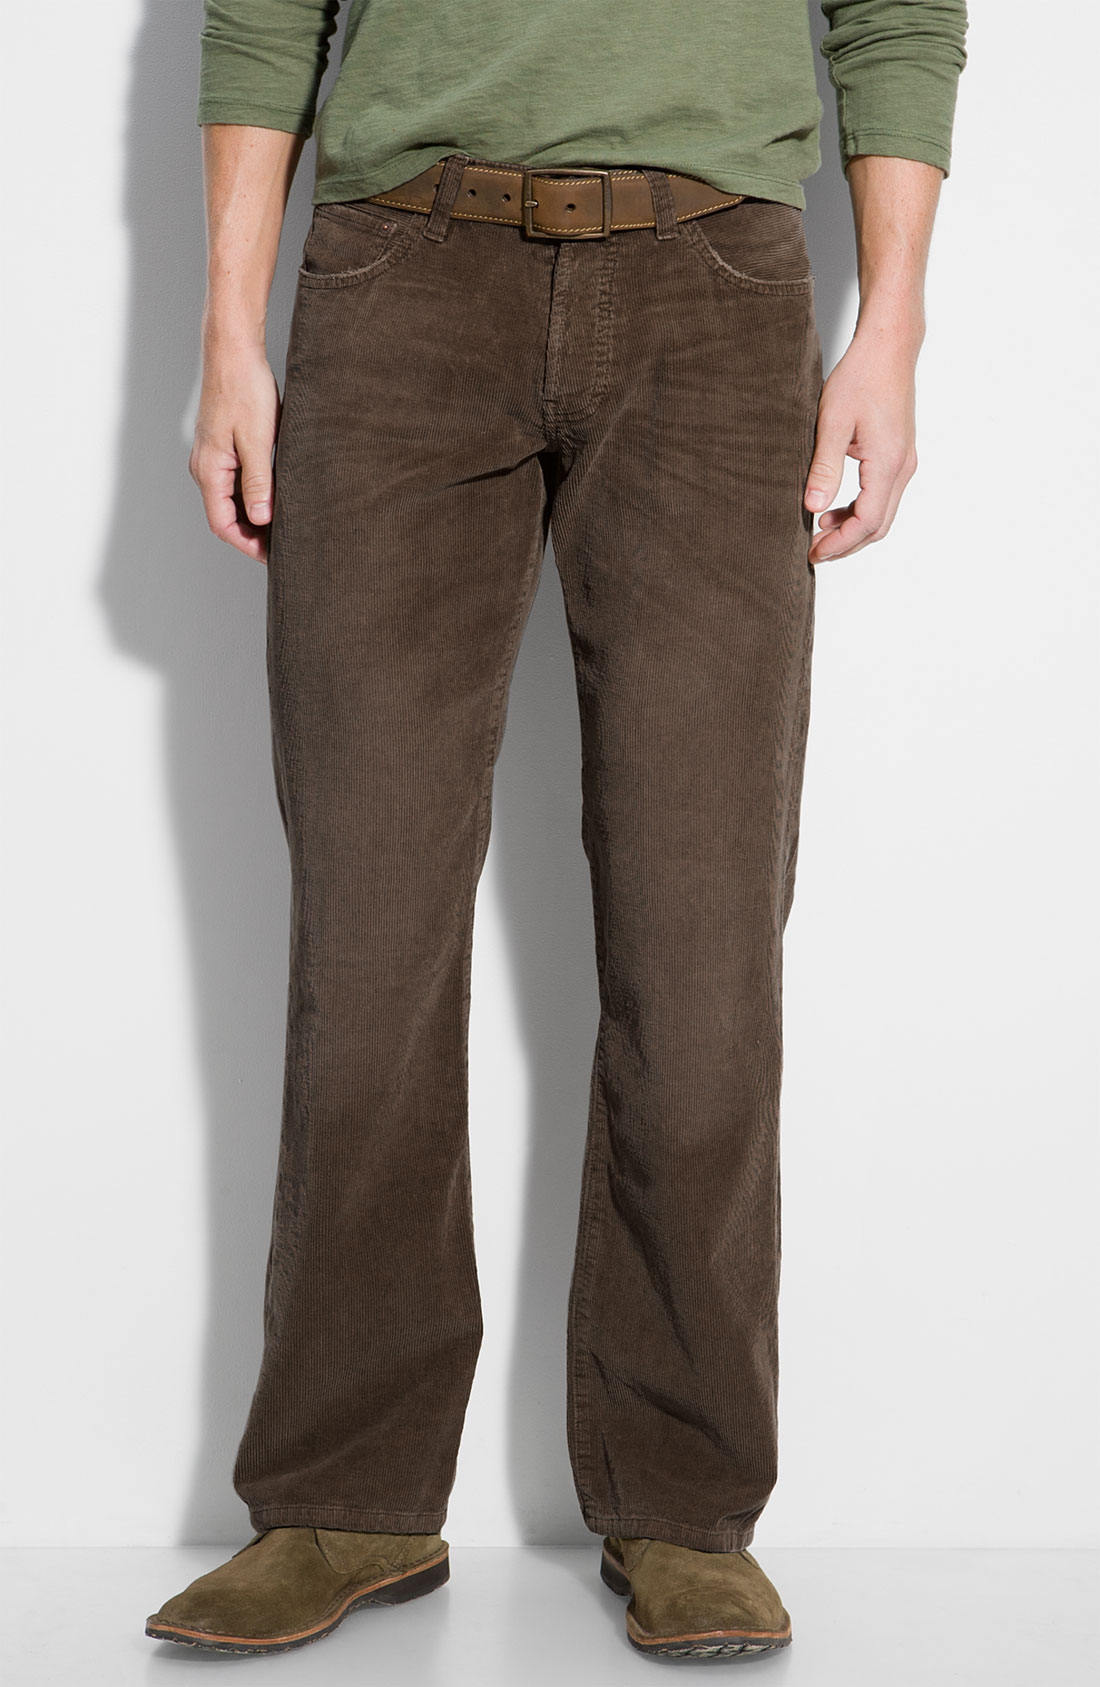 Mens Dark Brown Corduroy Pants - White Pants 2016